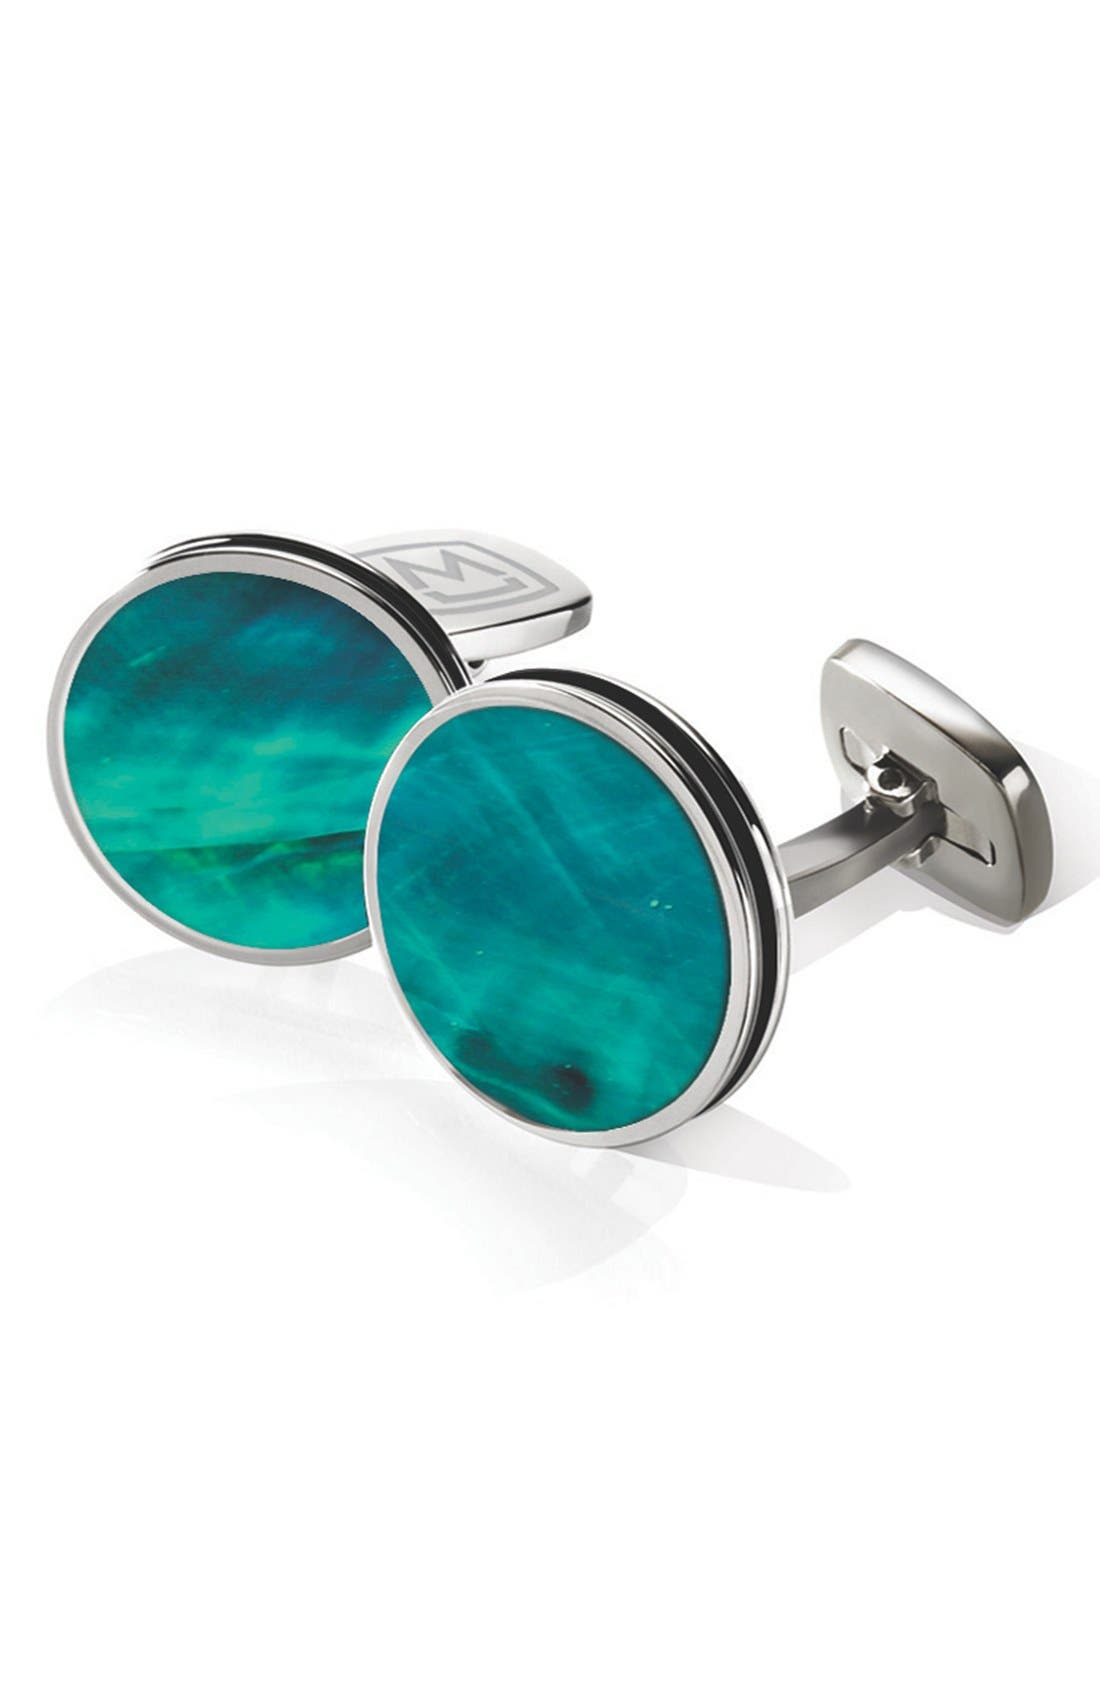 Stainless Steel Cuff Links,                         Main,                         color, 040